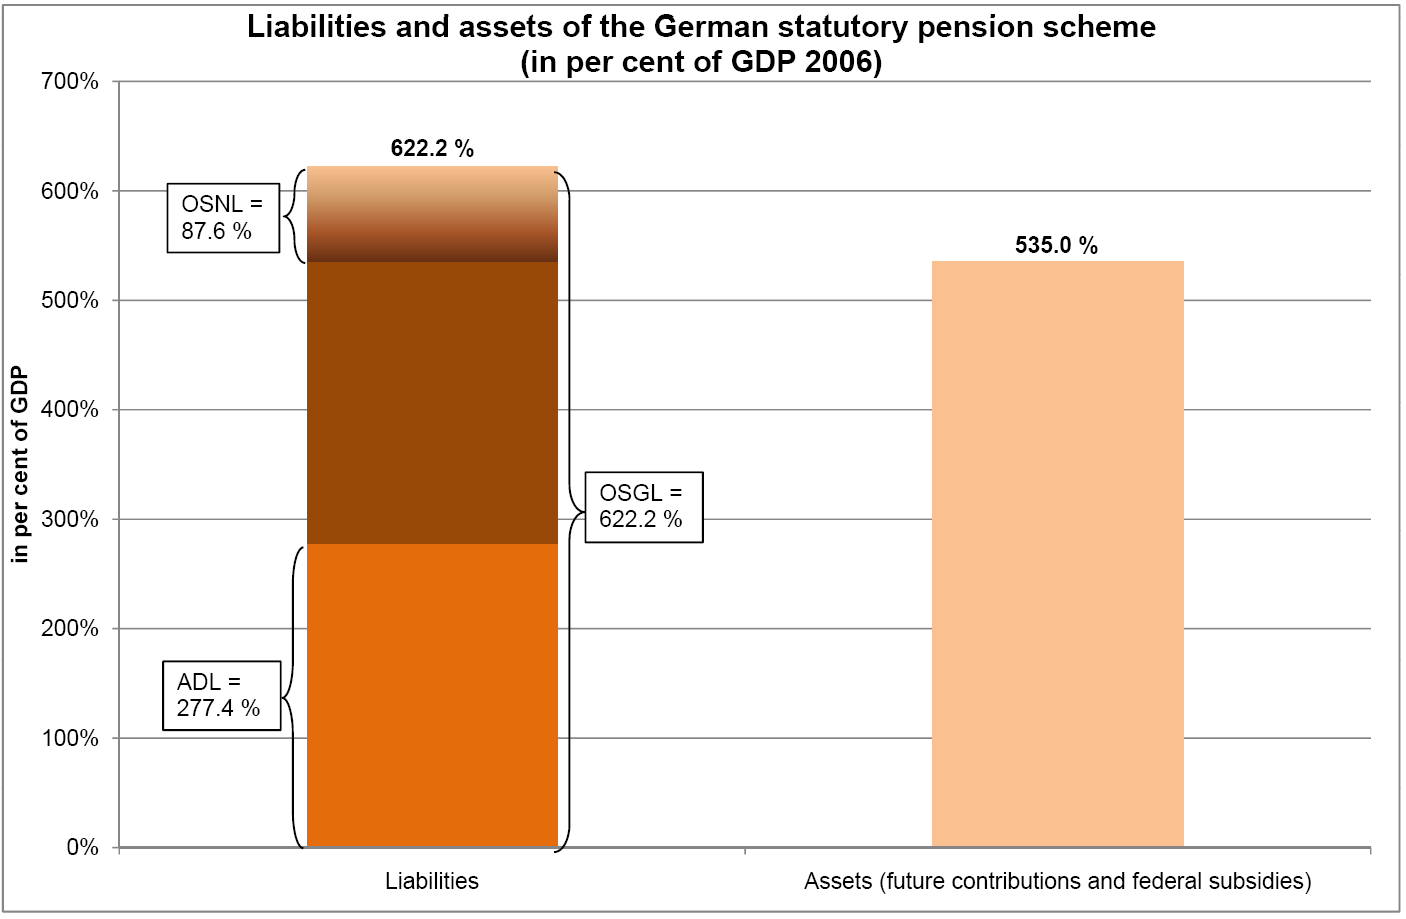 Scope of pension liabilities